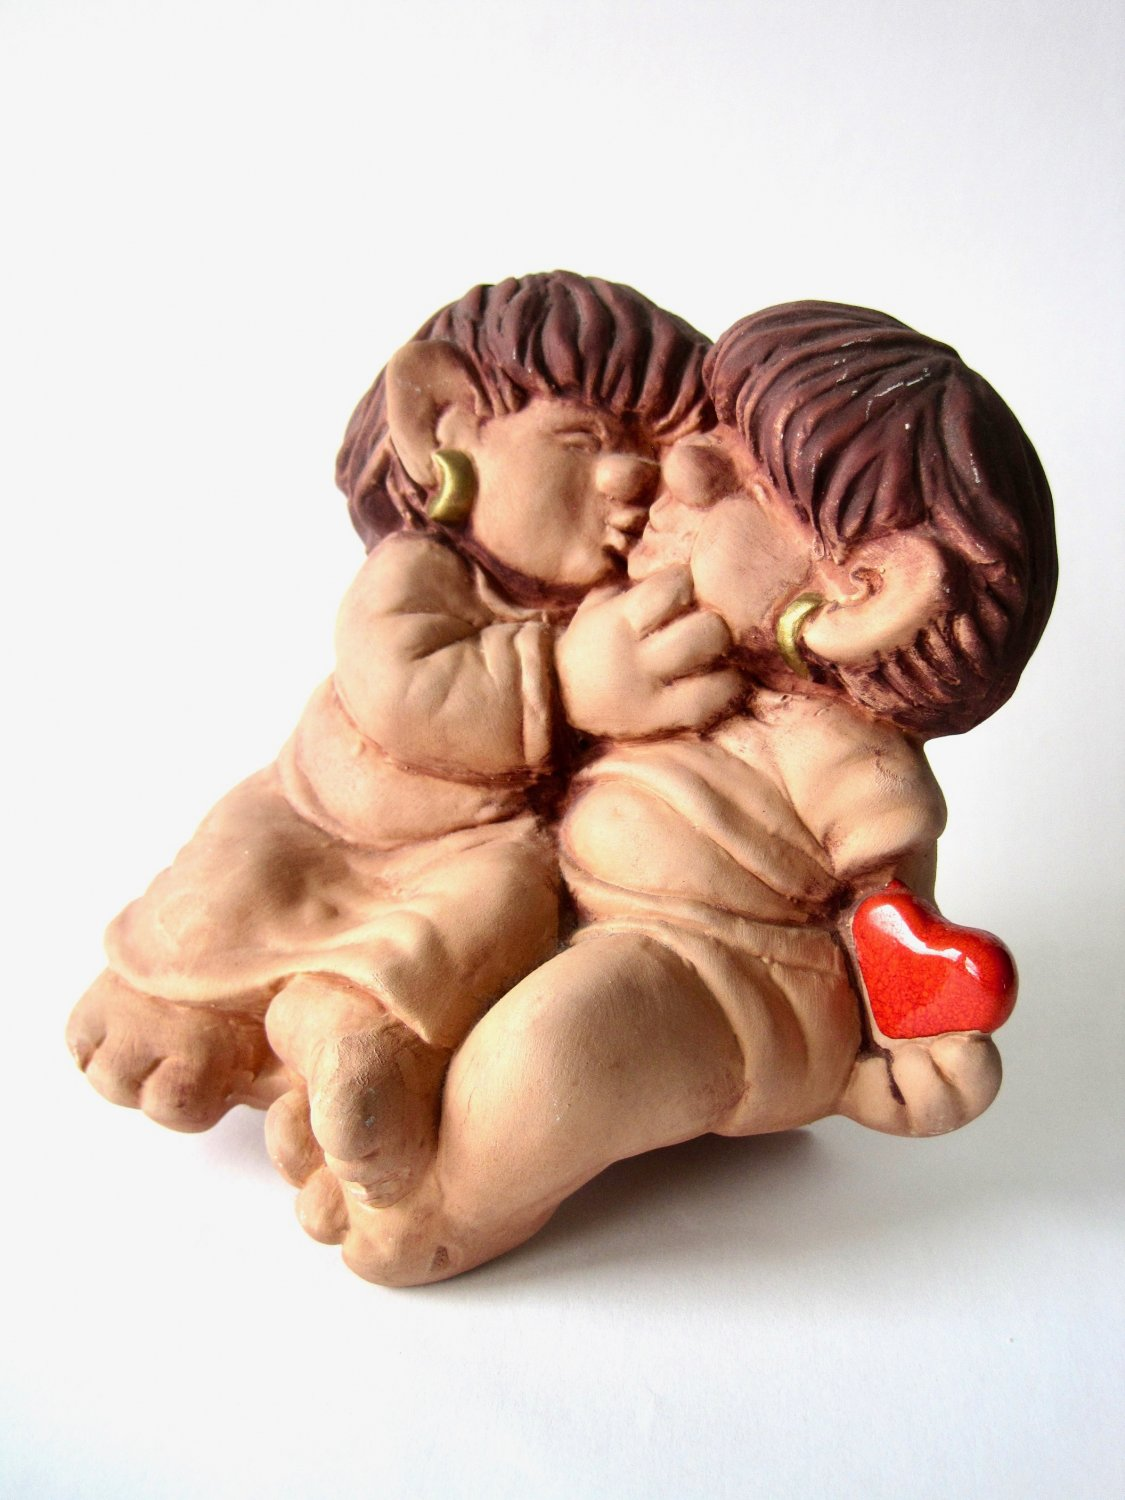 Vintage JIE Gantofta Kissing Trolls Ceramic Figurine, Trolls in Love, Design Ewa Jarenskog